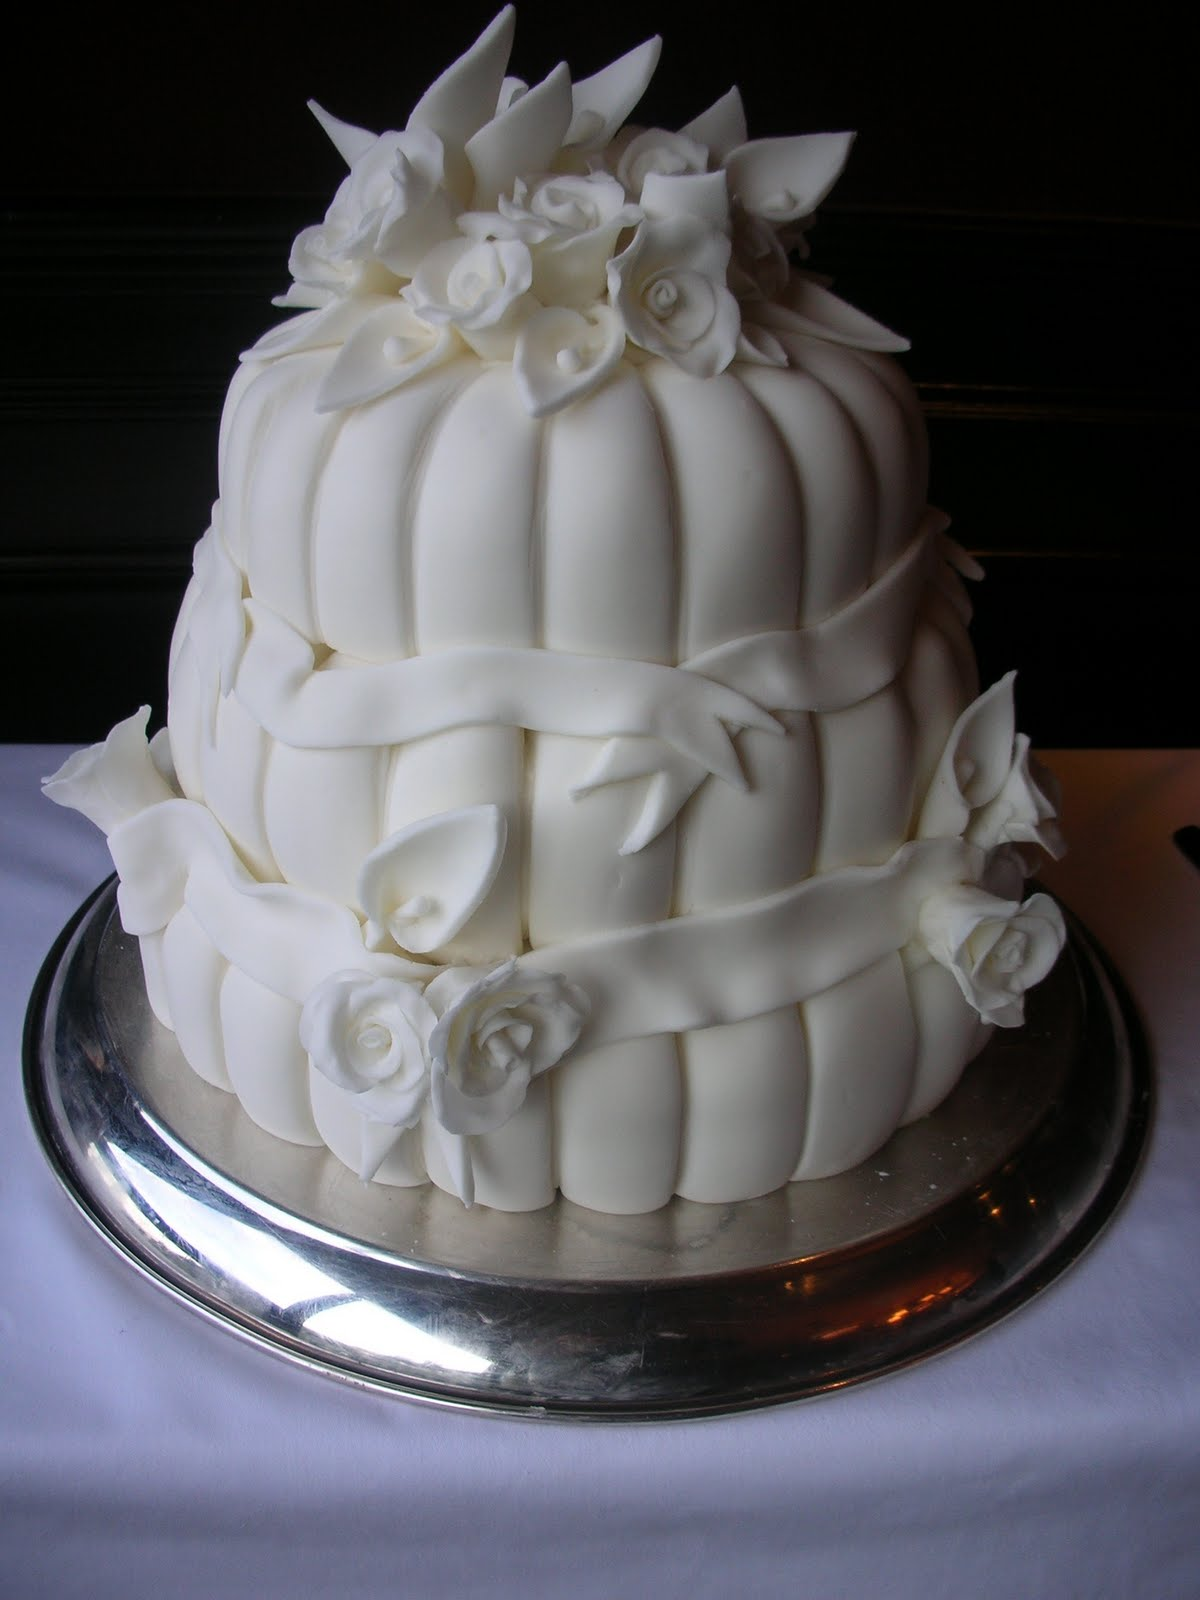 Rimrock wedding cake